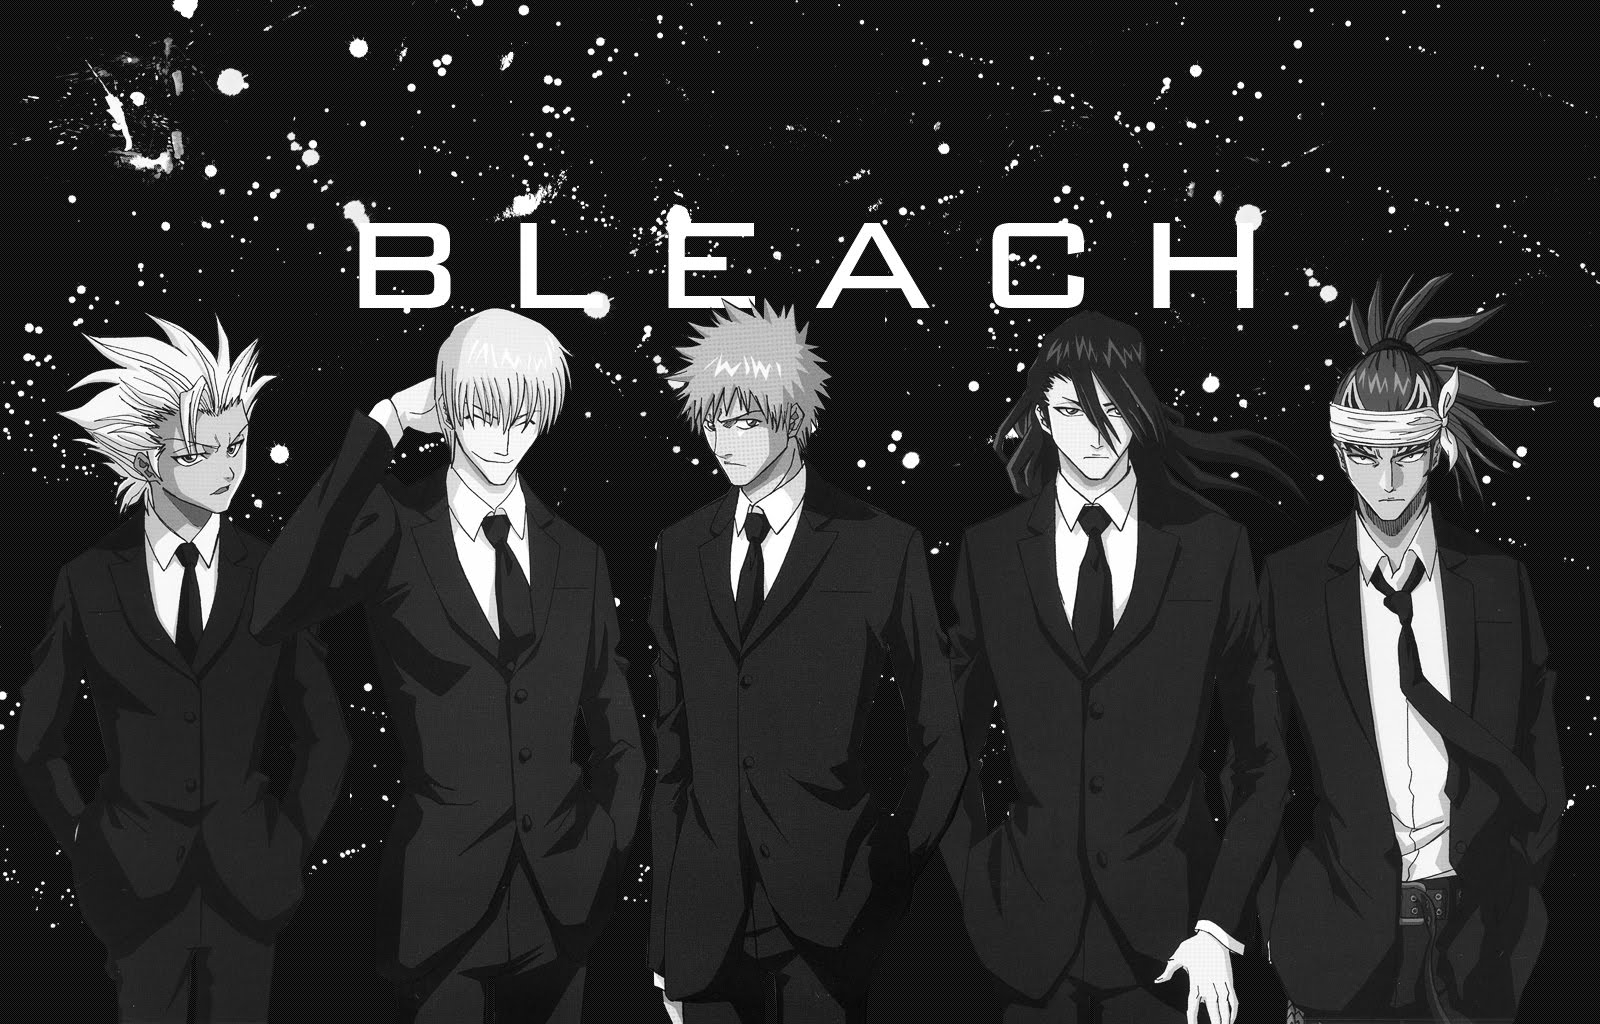 Men In Suits bleach anime teen gay boys.com : gay teen teen gays sex pictures tiwnk